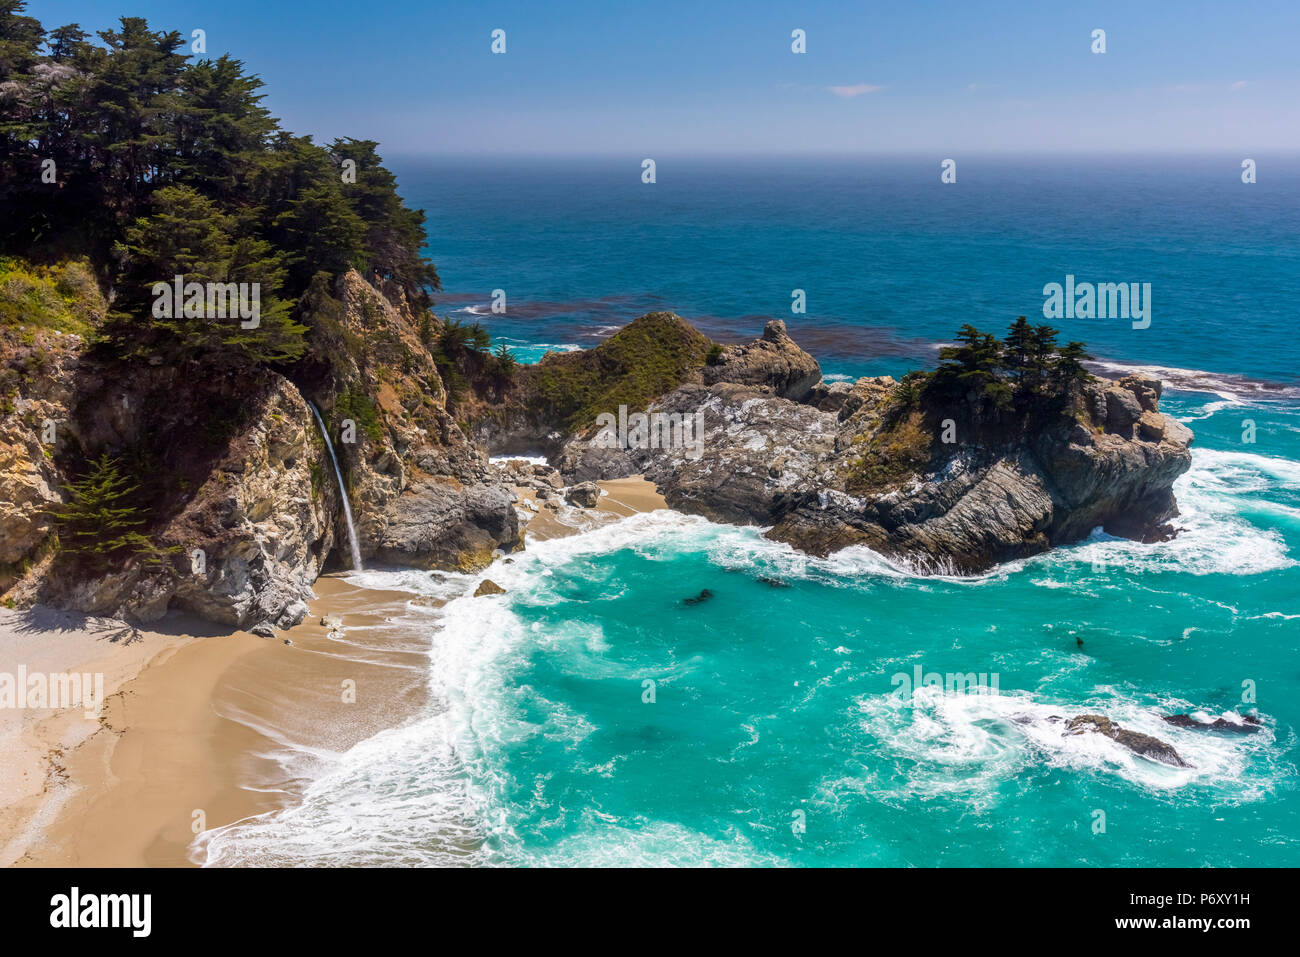 USA, Kalifornien, Big Sur, Pacific Coast Highway (California State Route 1), Julia Pfeiffer Burns State Park, McWay Cove, McWay Falls Stockbild